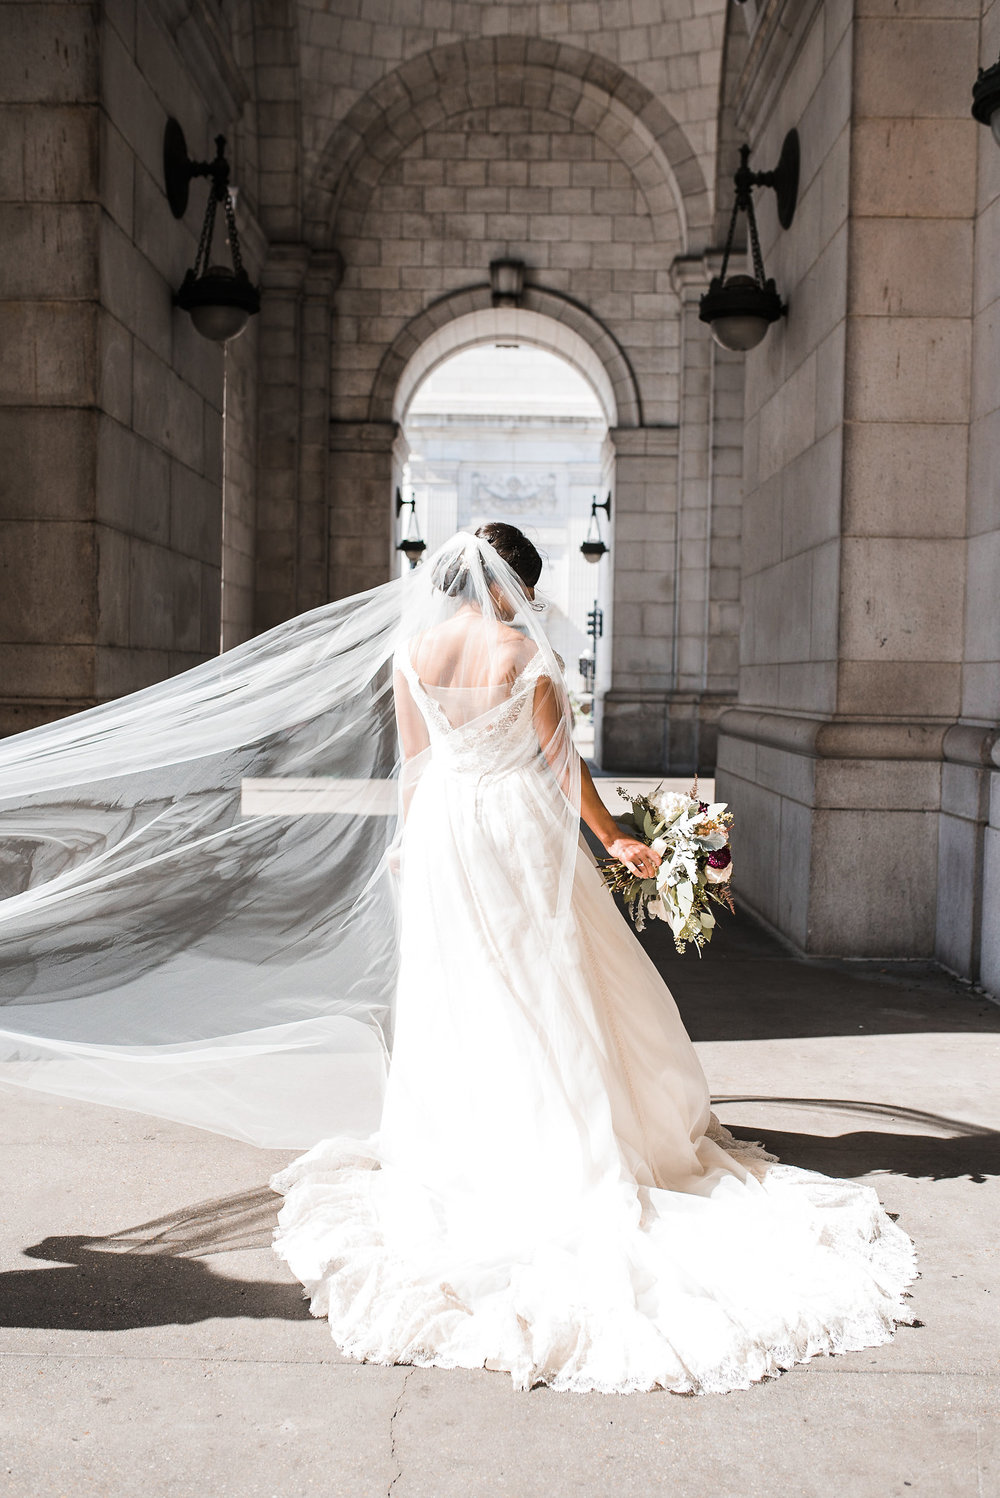 Bride's veil blowing in wind